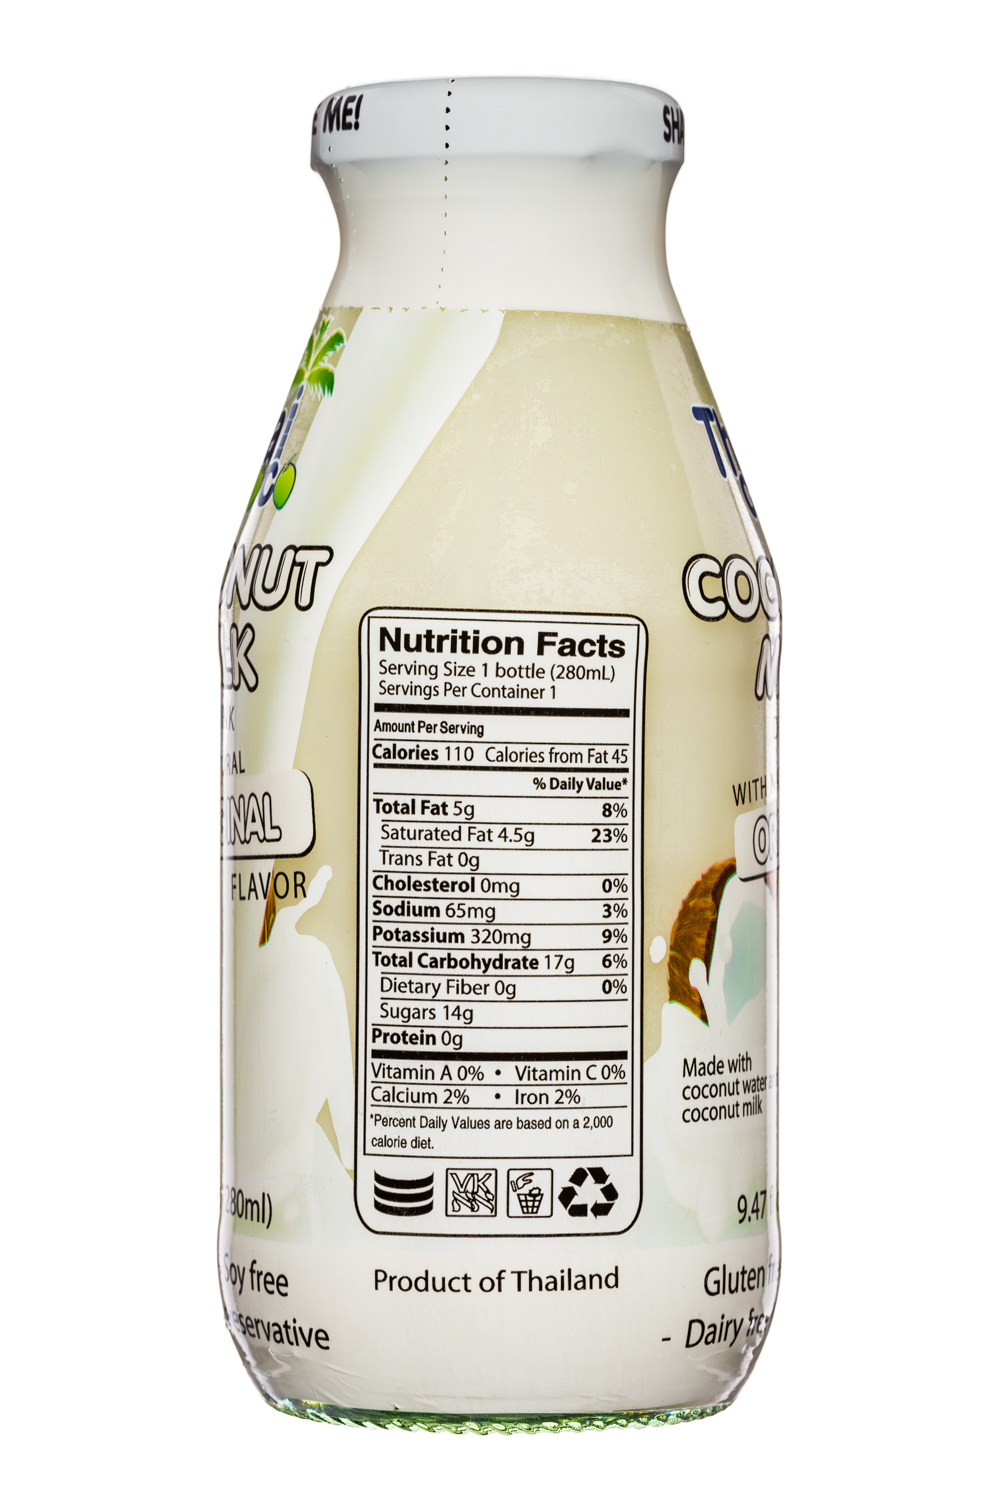 Thai Coco: ThaiCoco-CoconutMilk-9oz-OG-Facts